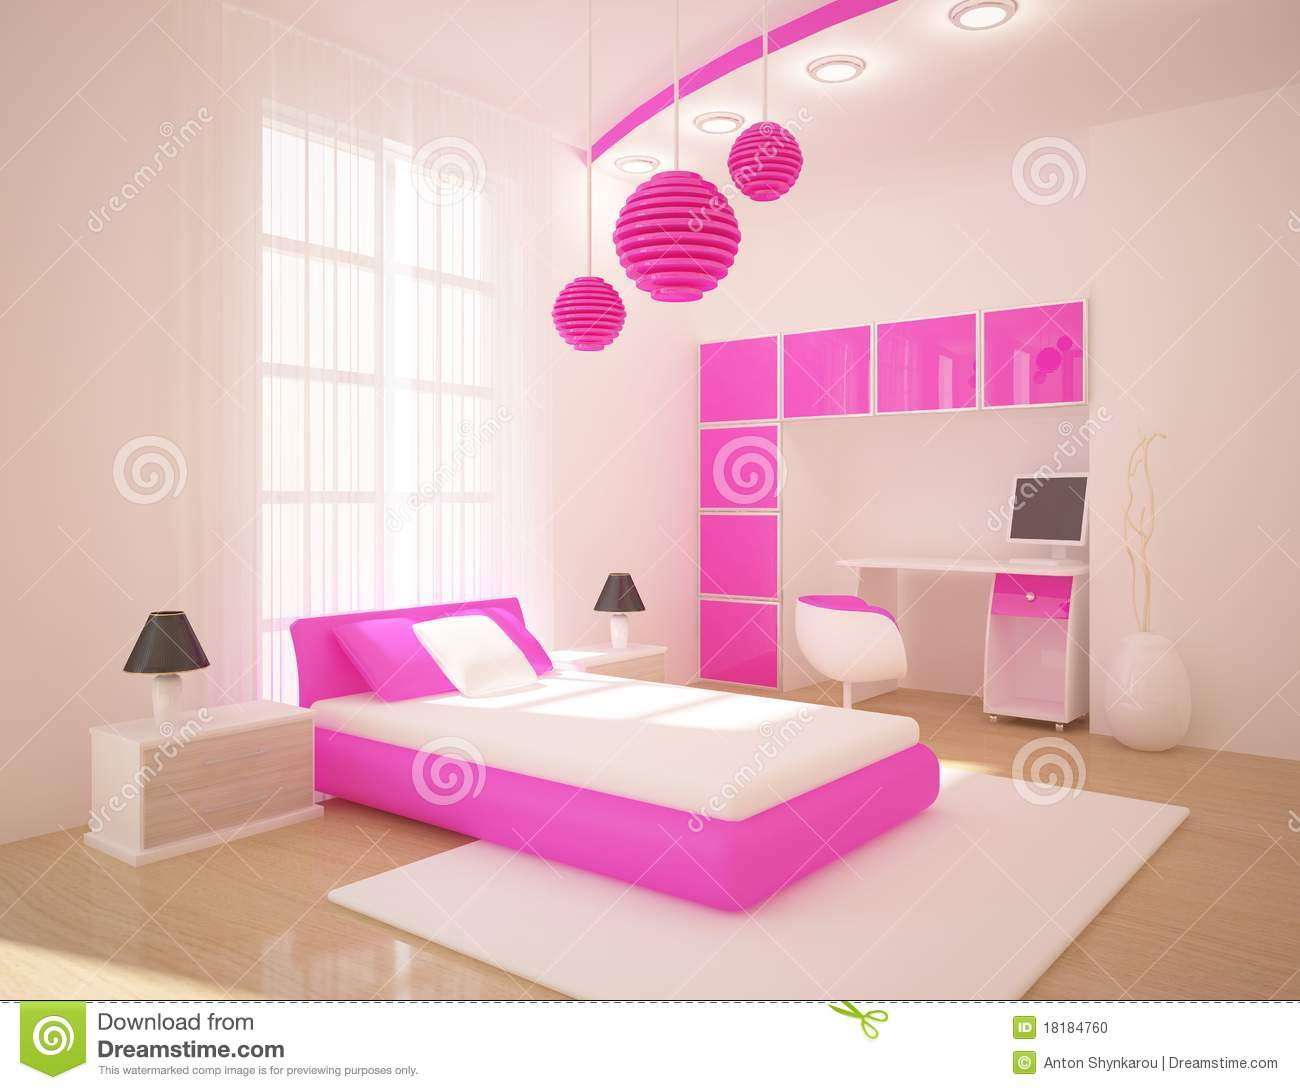 Chambre à coucher rose photo stock   image: 18184760